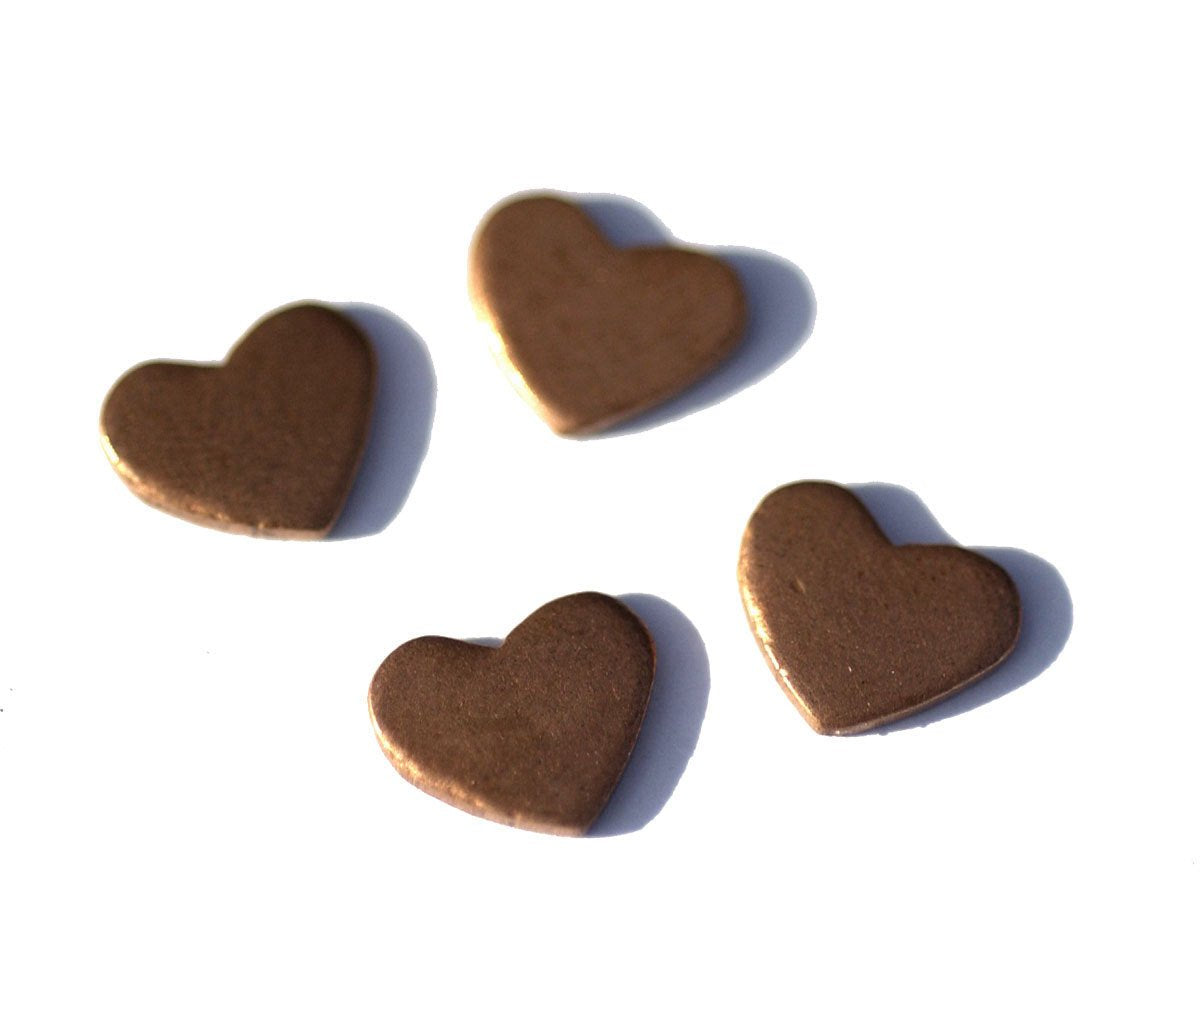 Copper Classic Heart II 9mm x 7mm 20g Cutout for Enameling Stamping Texturing